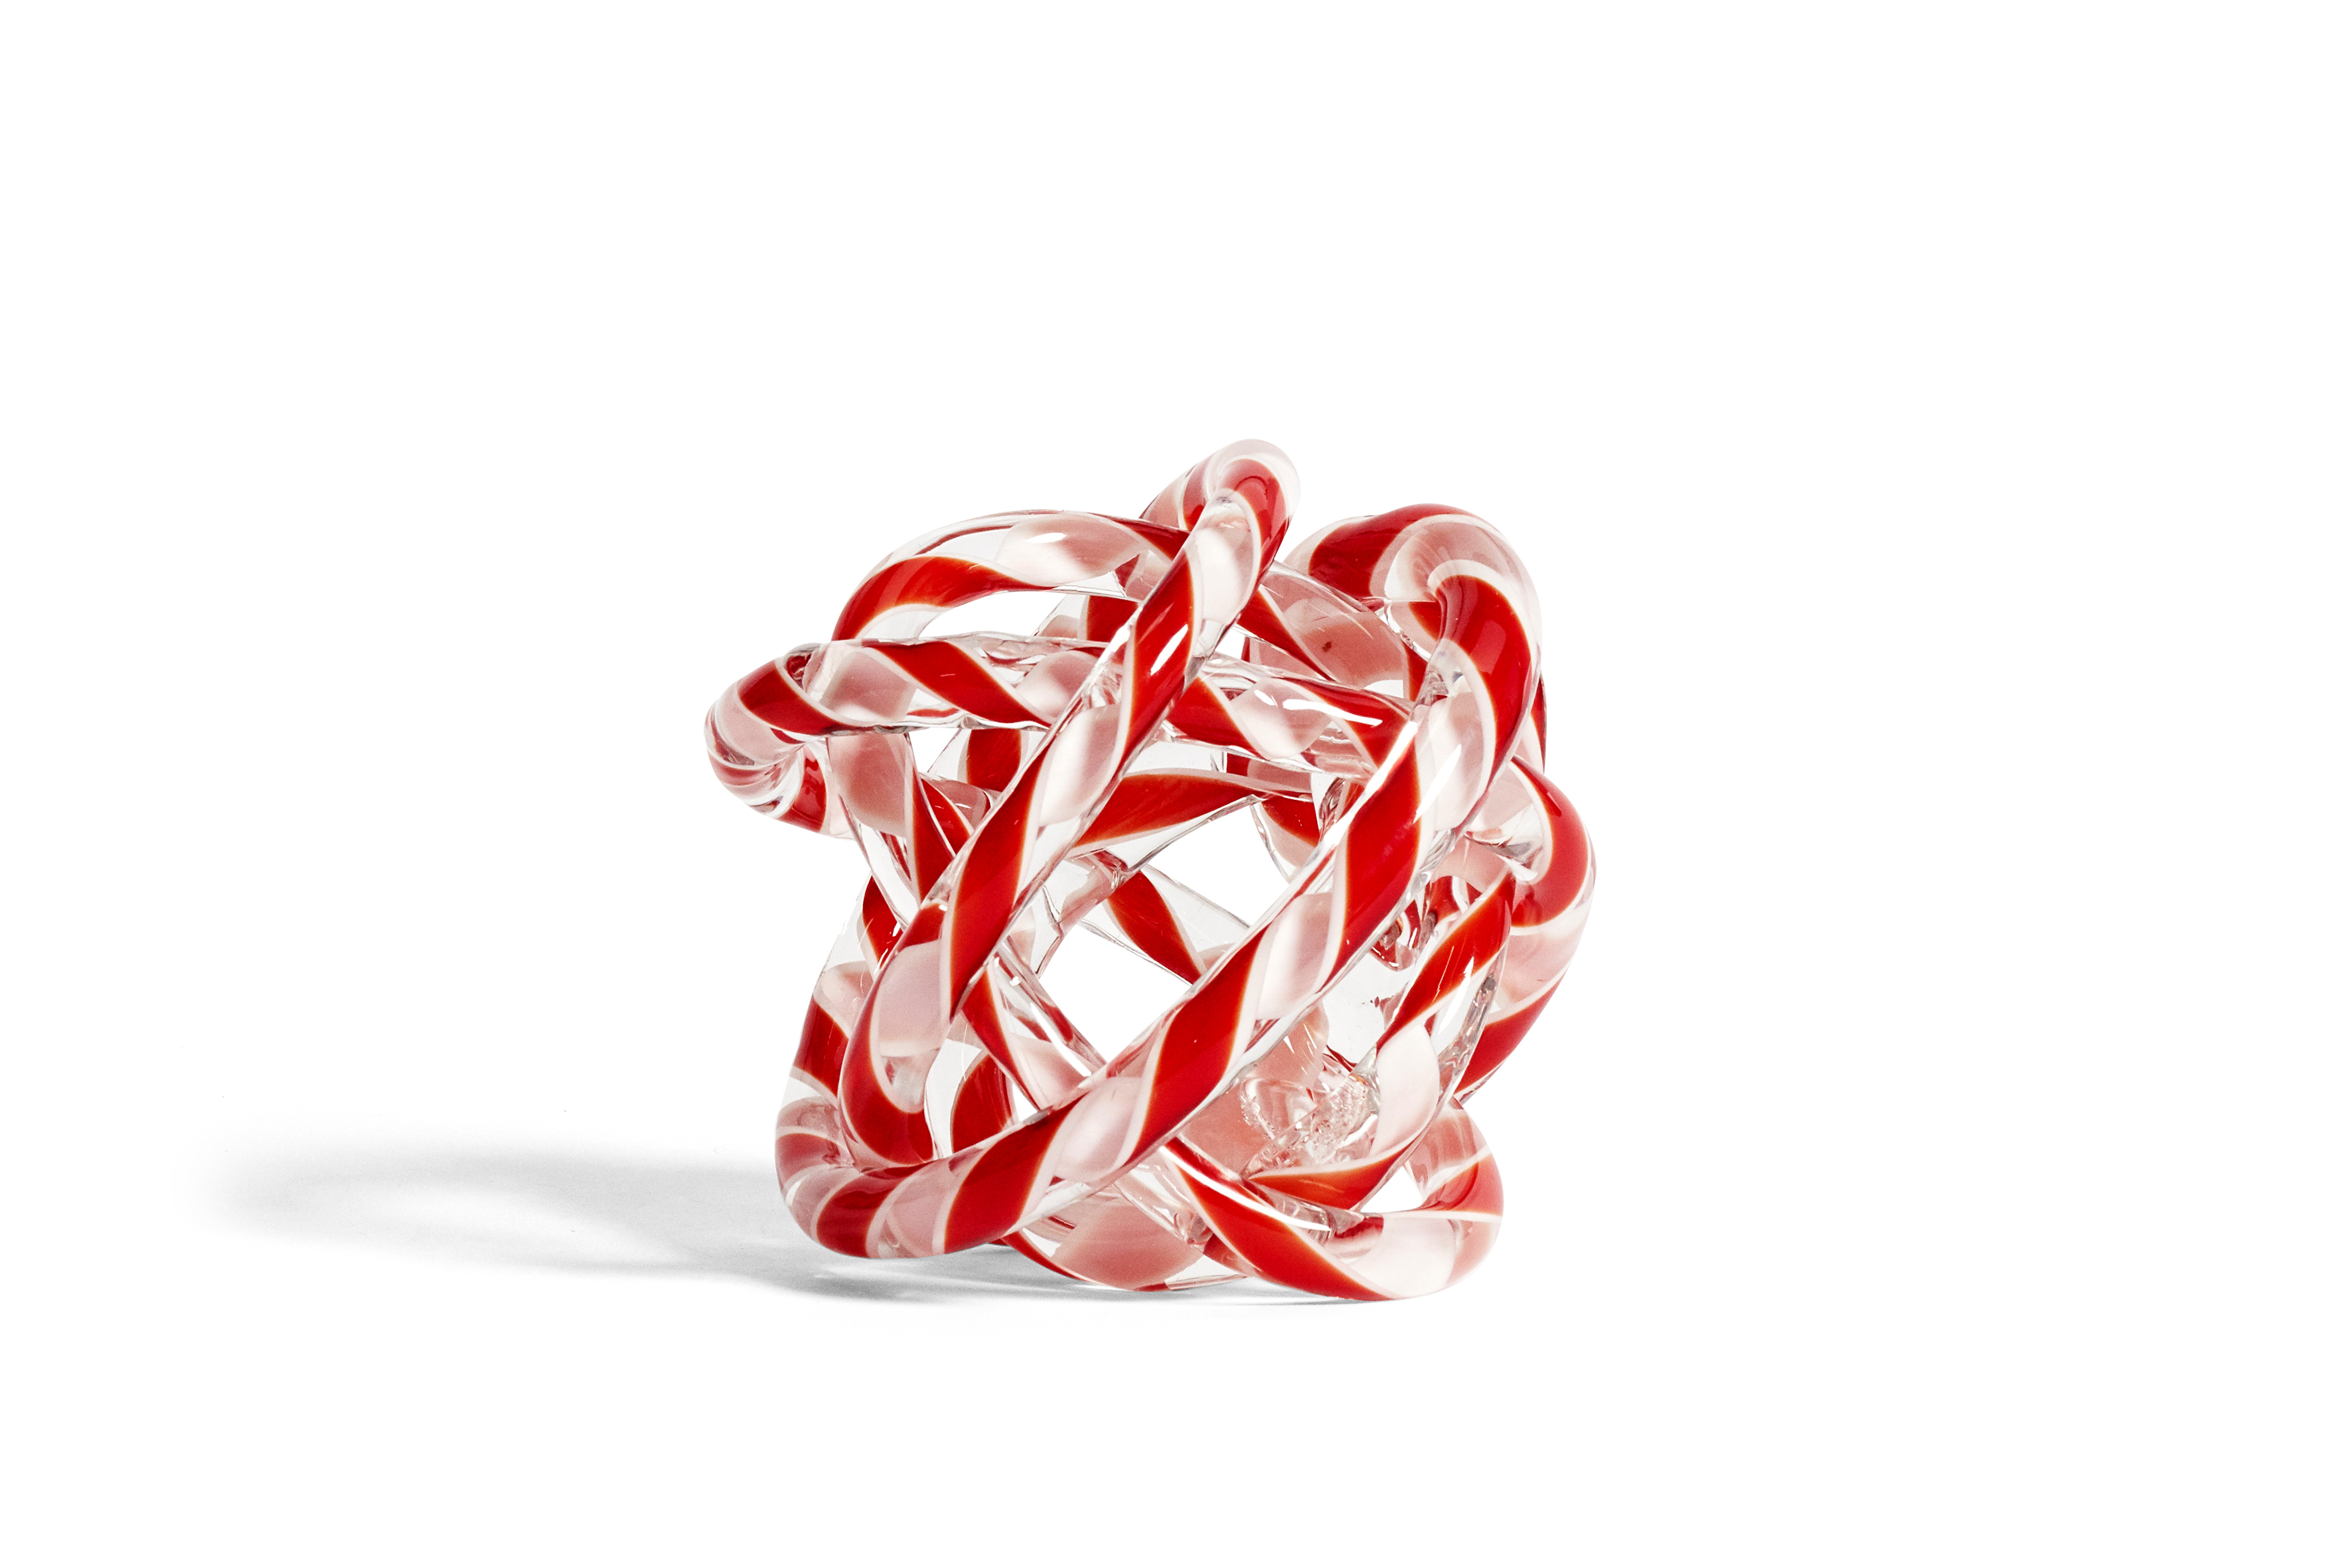 HAY Knot No2 M red & white